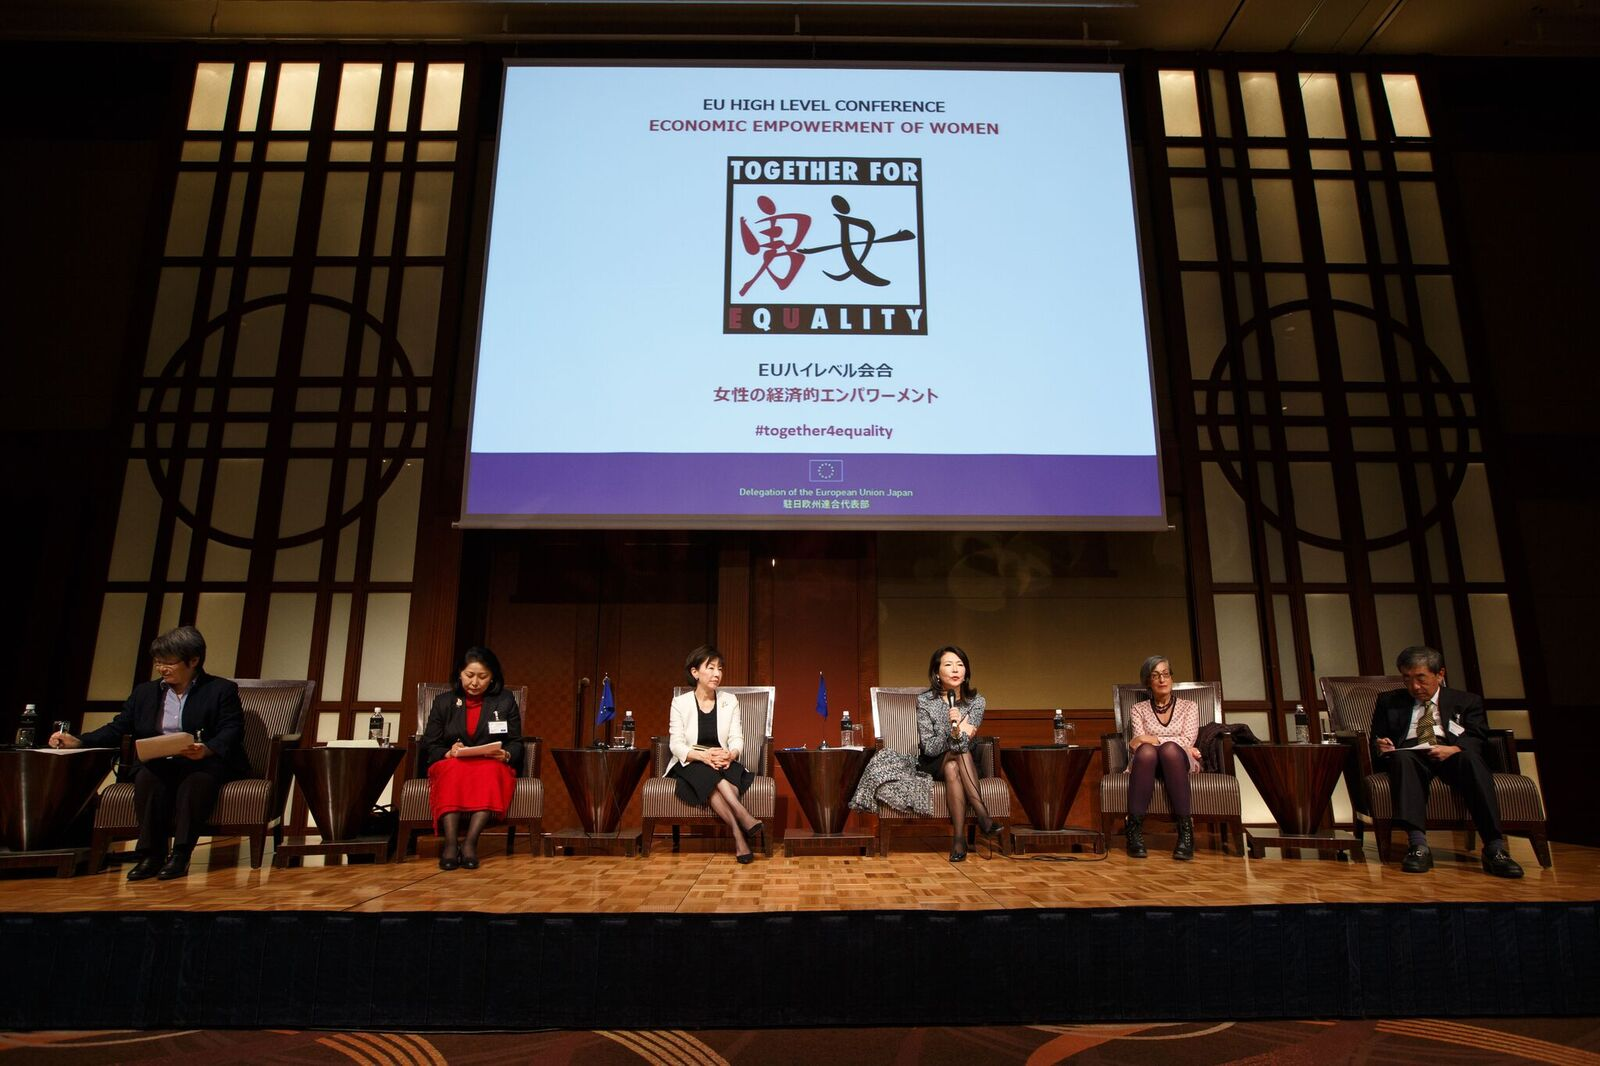 COSMO President & CEO, Kumi Sato speaks at the EU High-Level Conference on the Economic Empowerment of Women